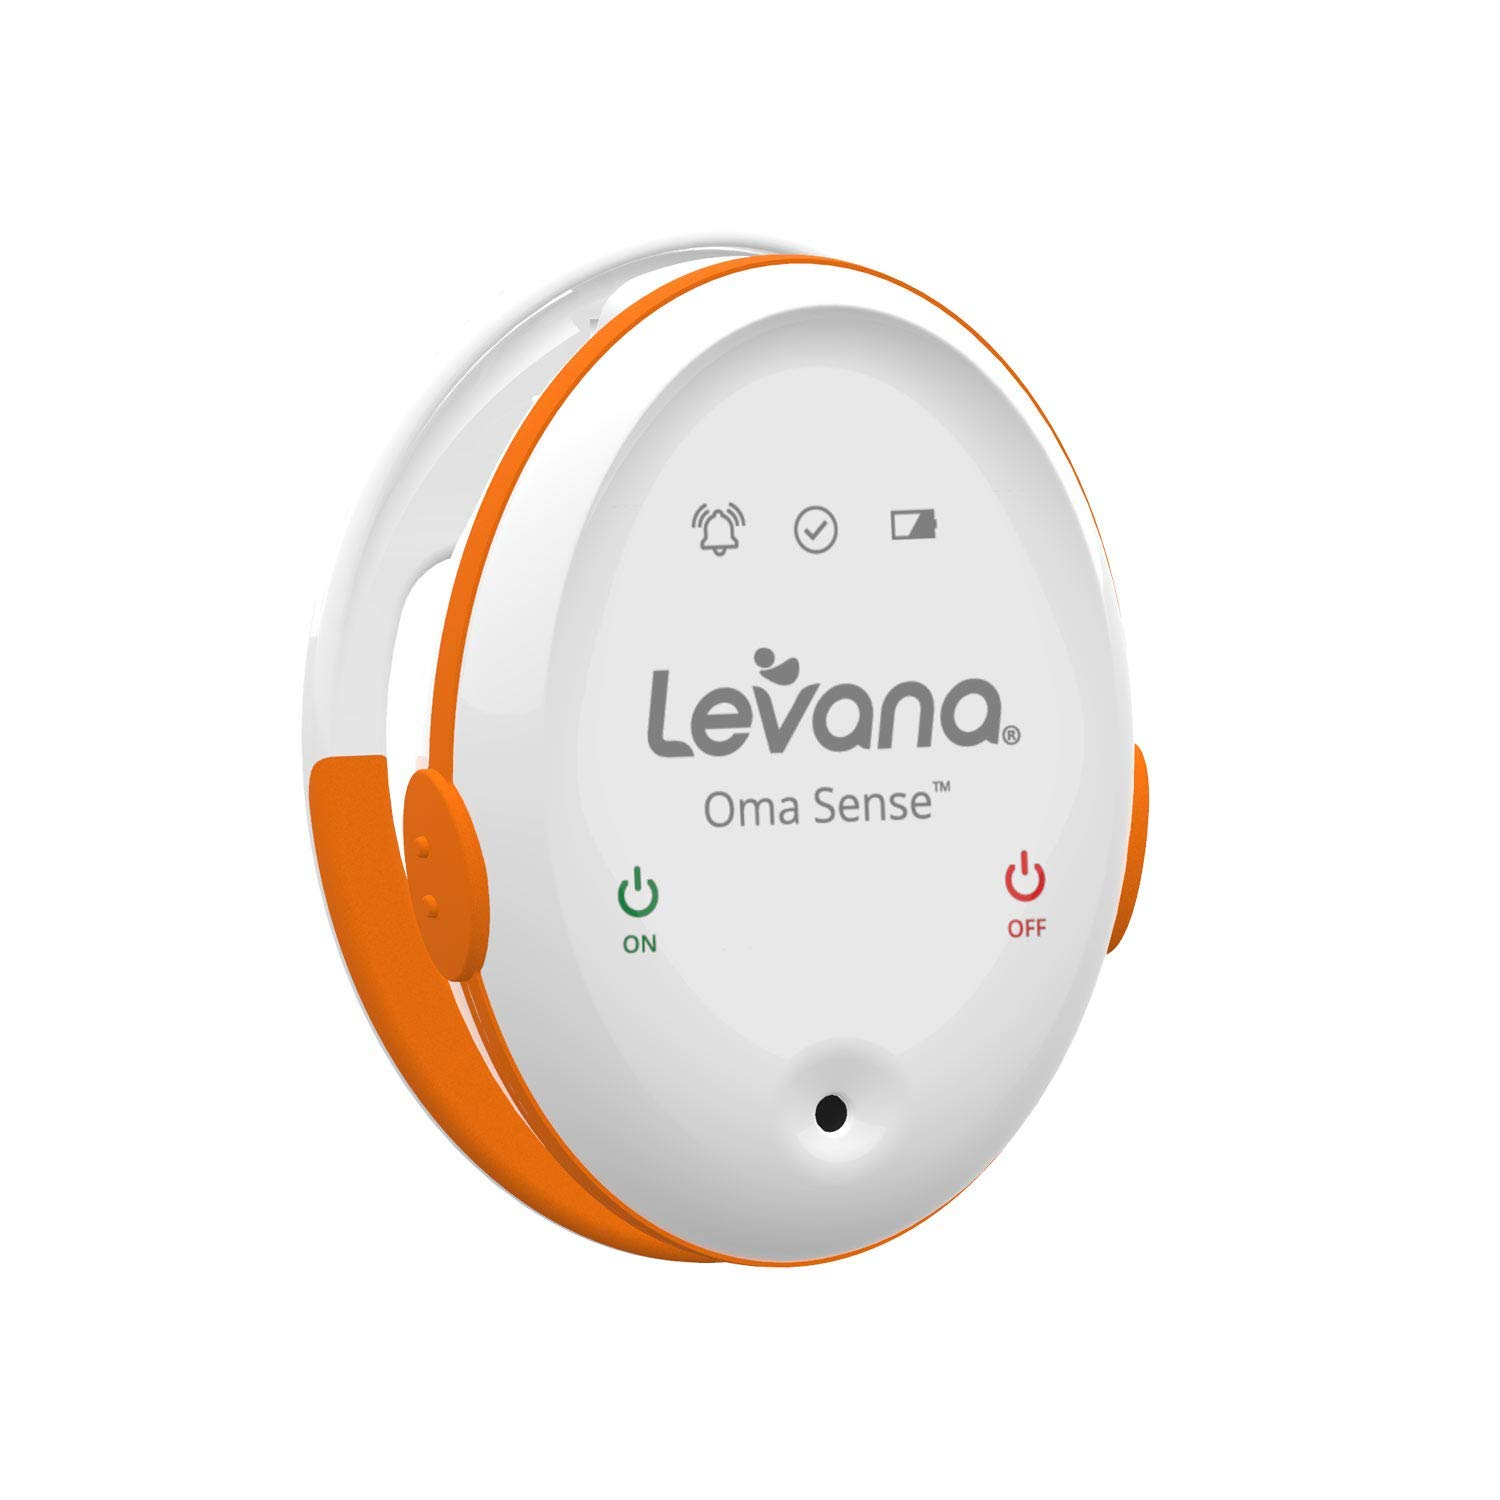 Levana Oma Sense Baby Breathing Movement Monitor - Baby Sleep Monitor with Wakeup Technology - Rousing Vibrations, Audio & Lights Stimulates Baby & Alerts Parents - Safety Baby Essentials for Newborn